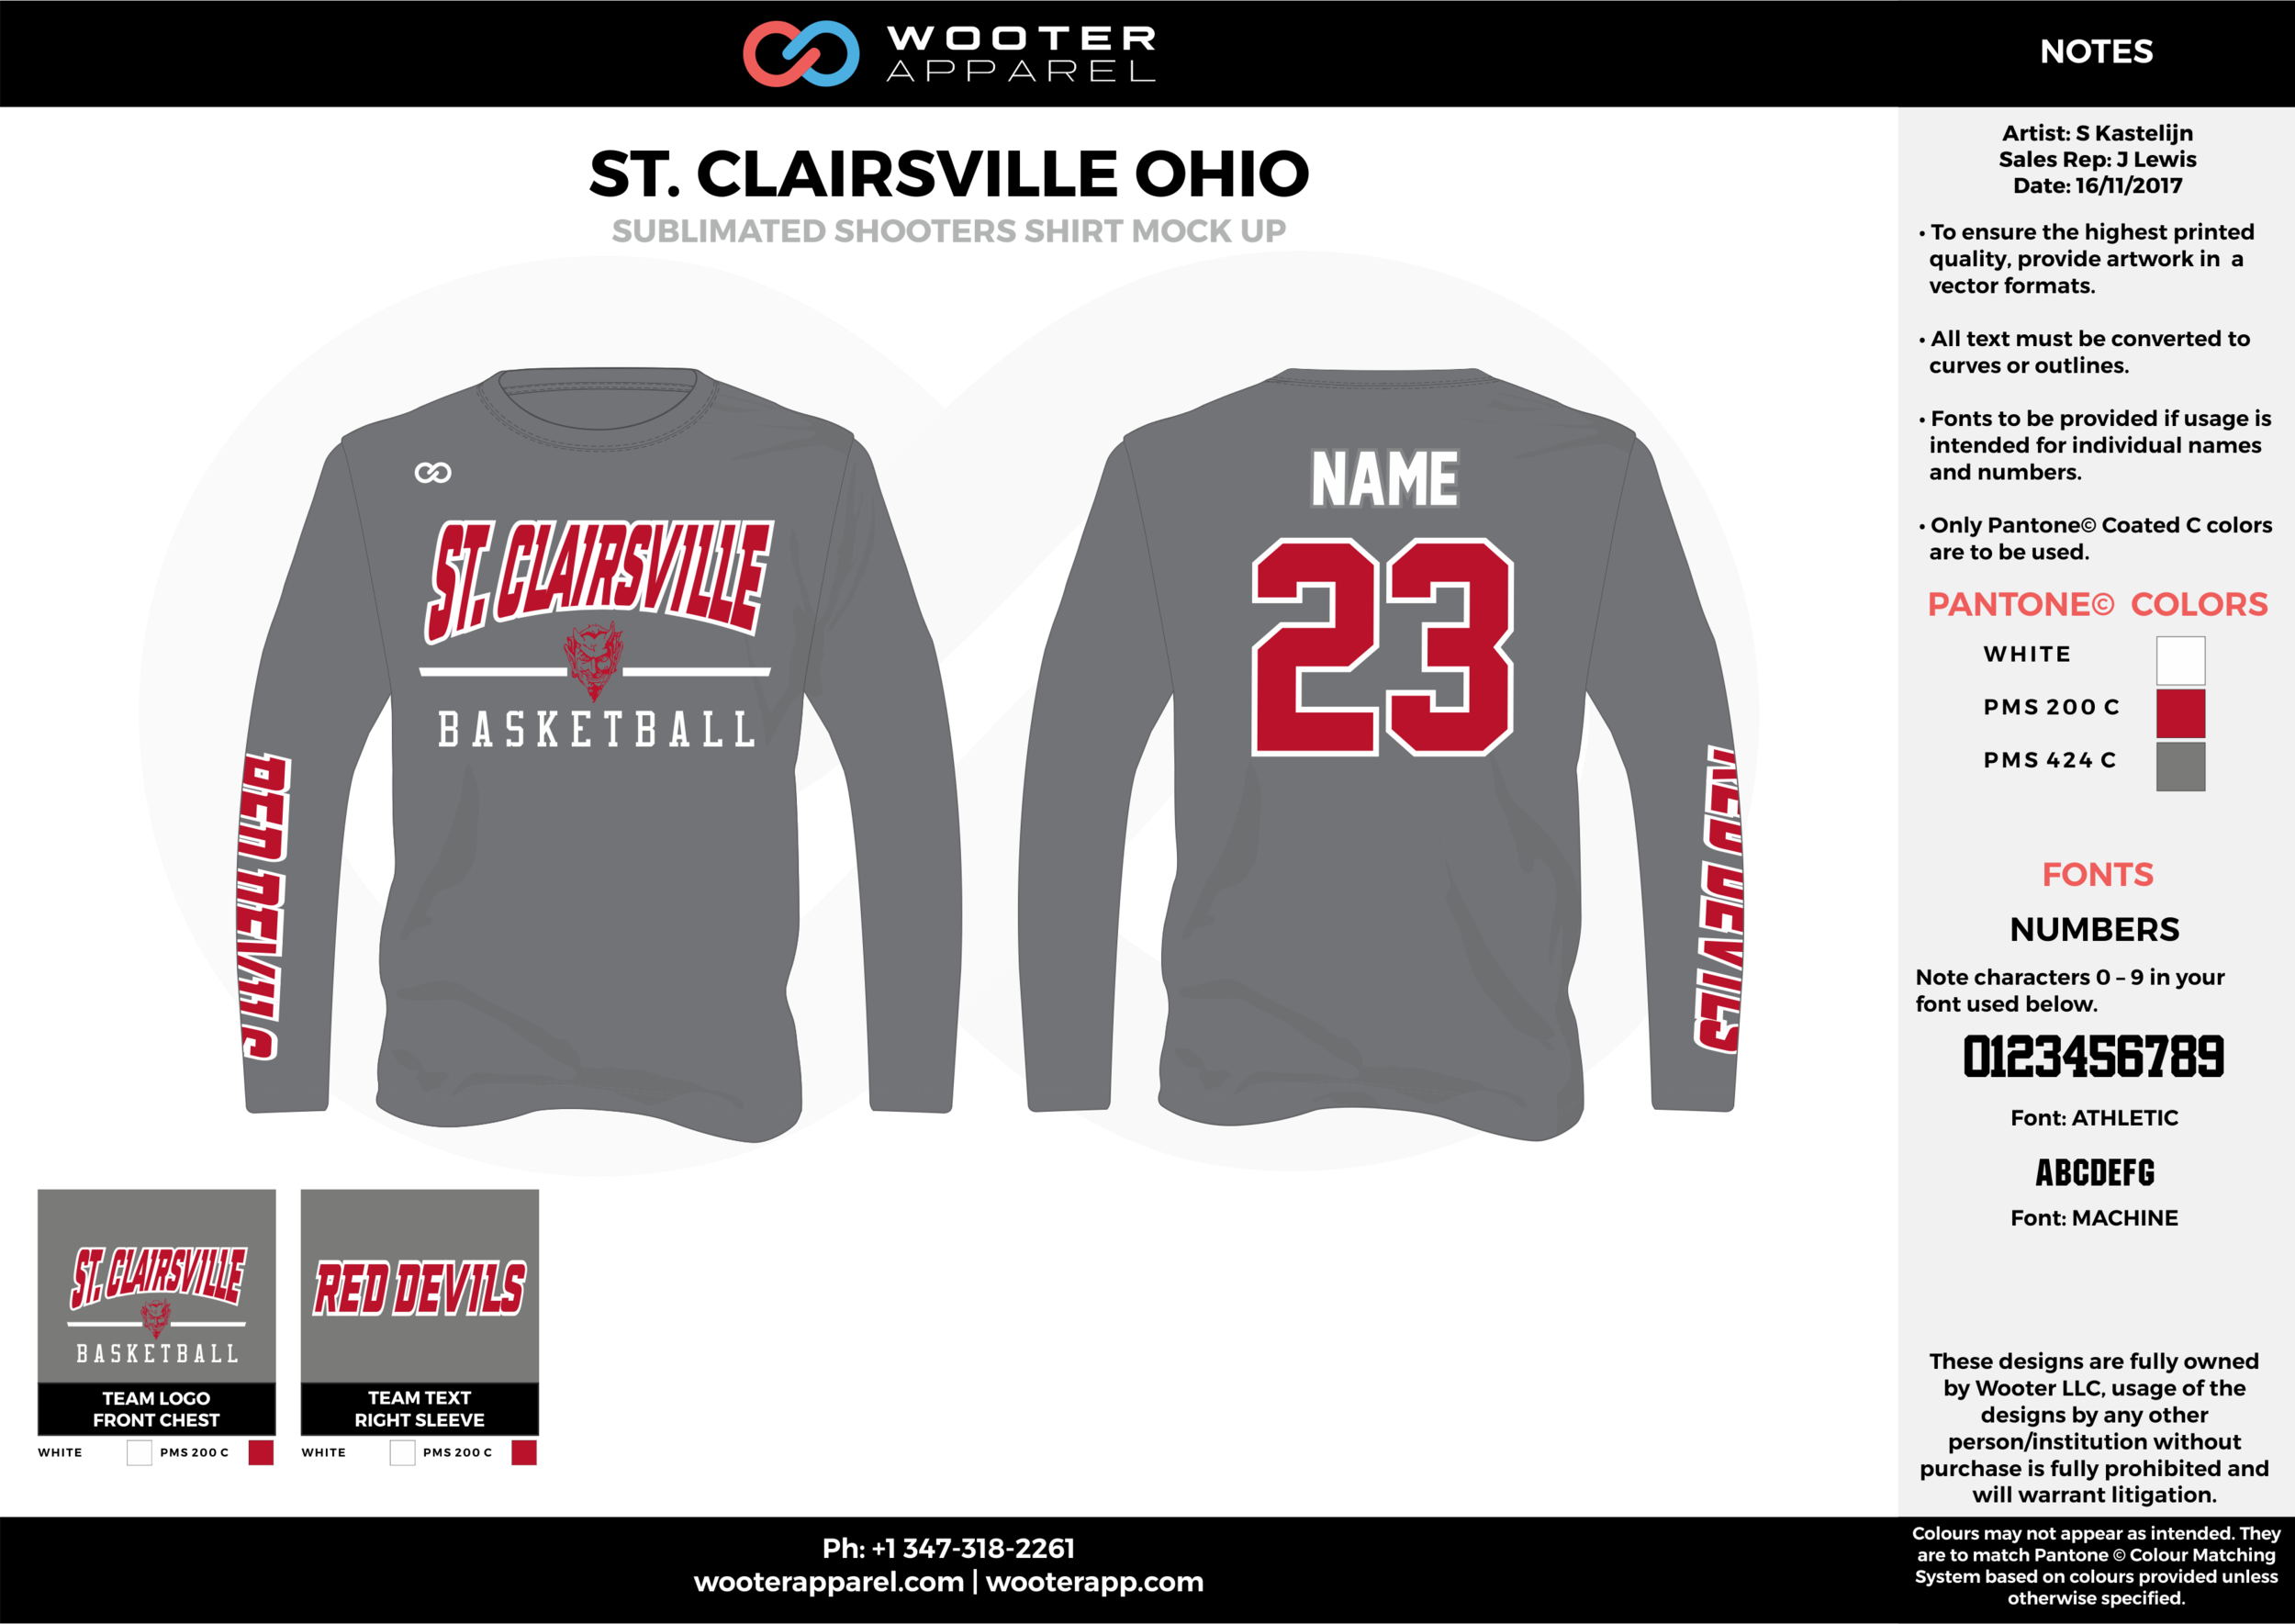 ST. CLAIRSVILLE OHIO gray red white Basketball Long Sleeve Shooting Shirt